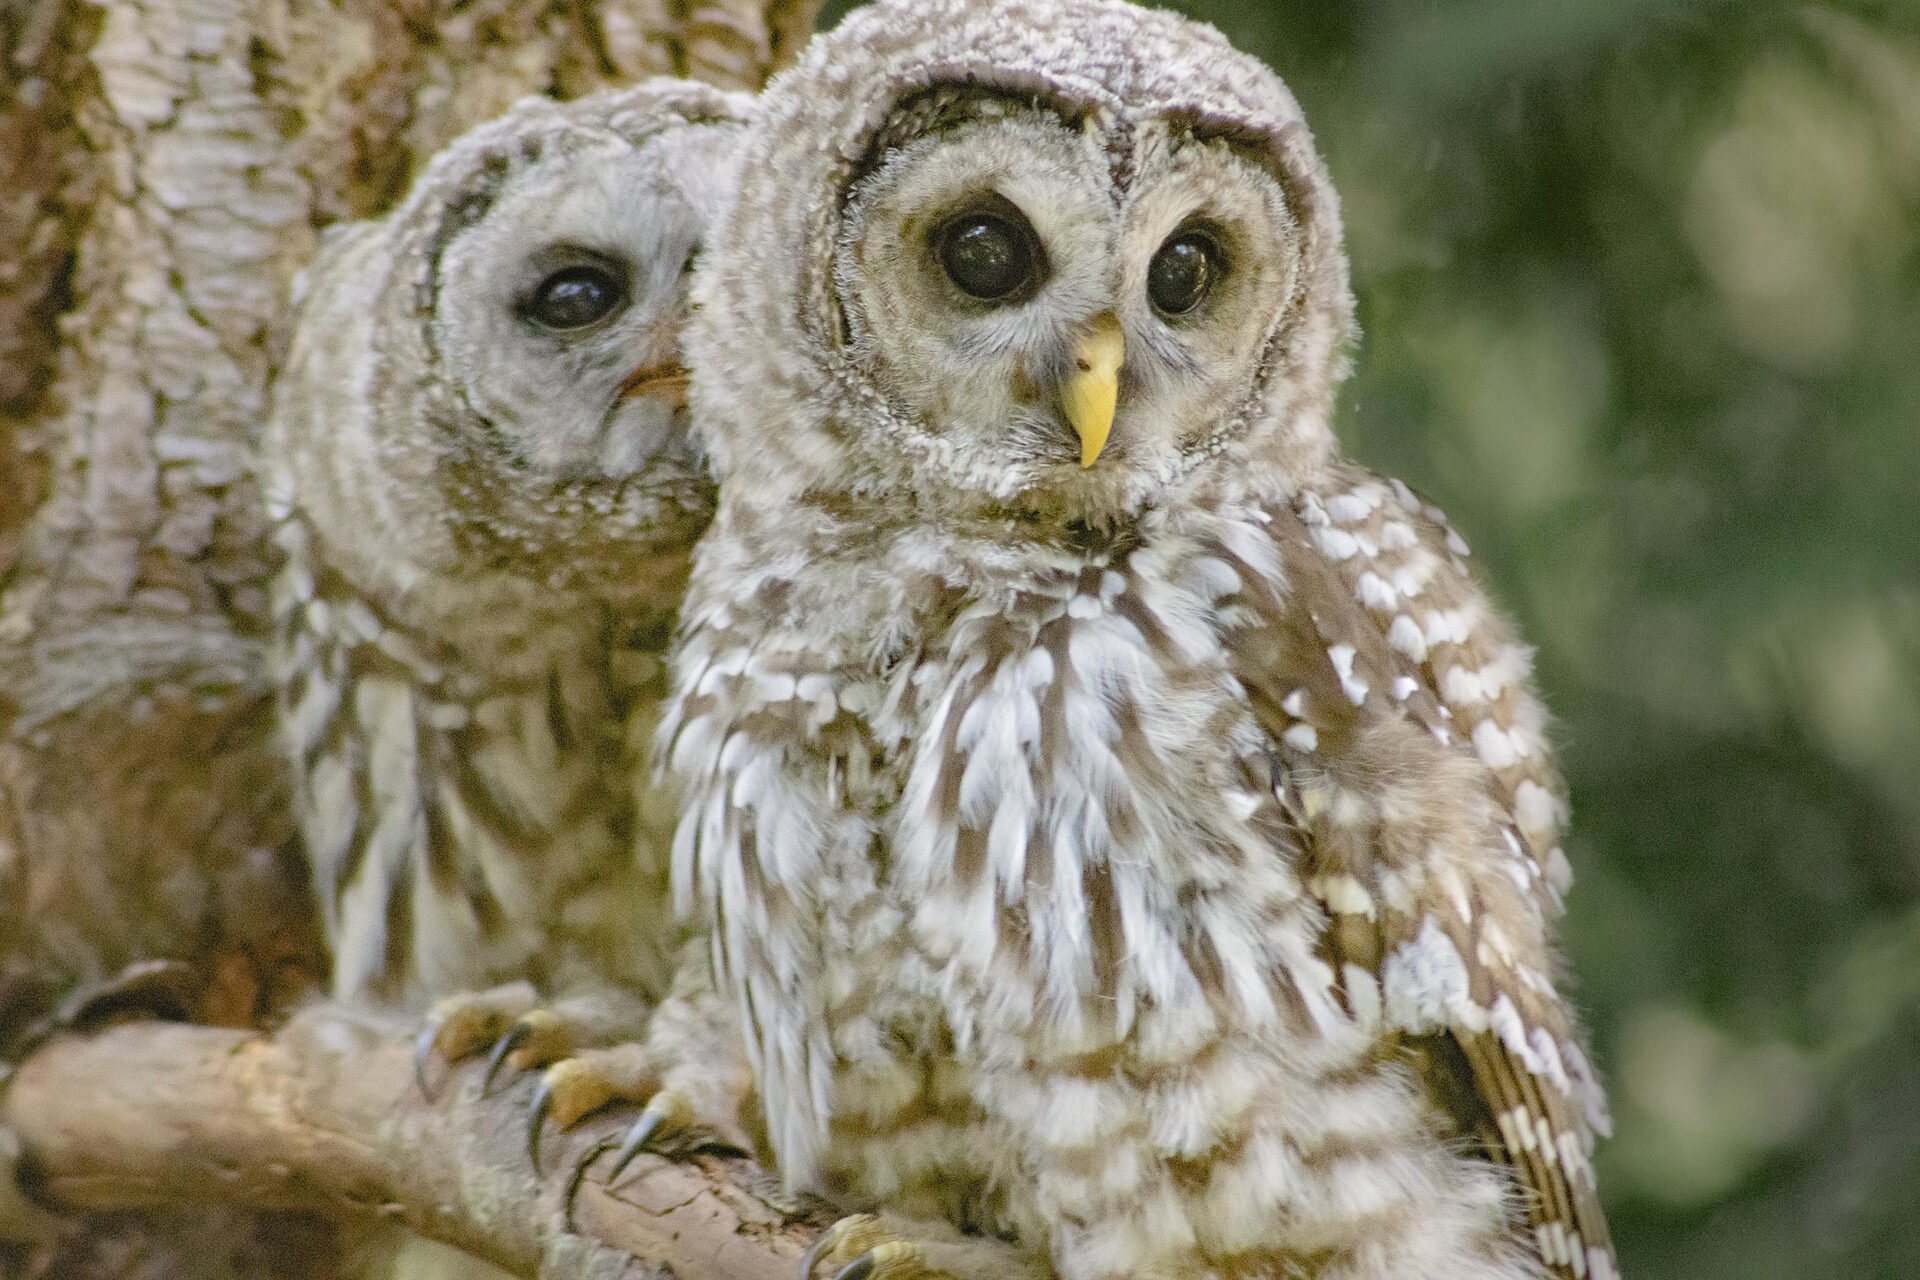 Barred Owlets, July 15, 2021